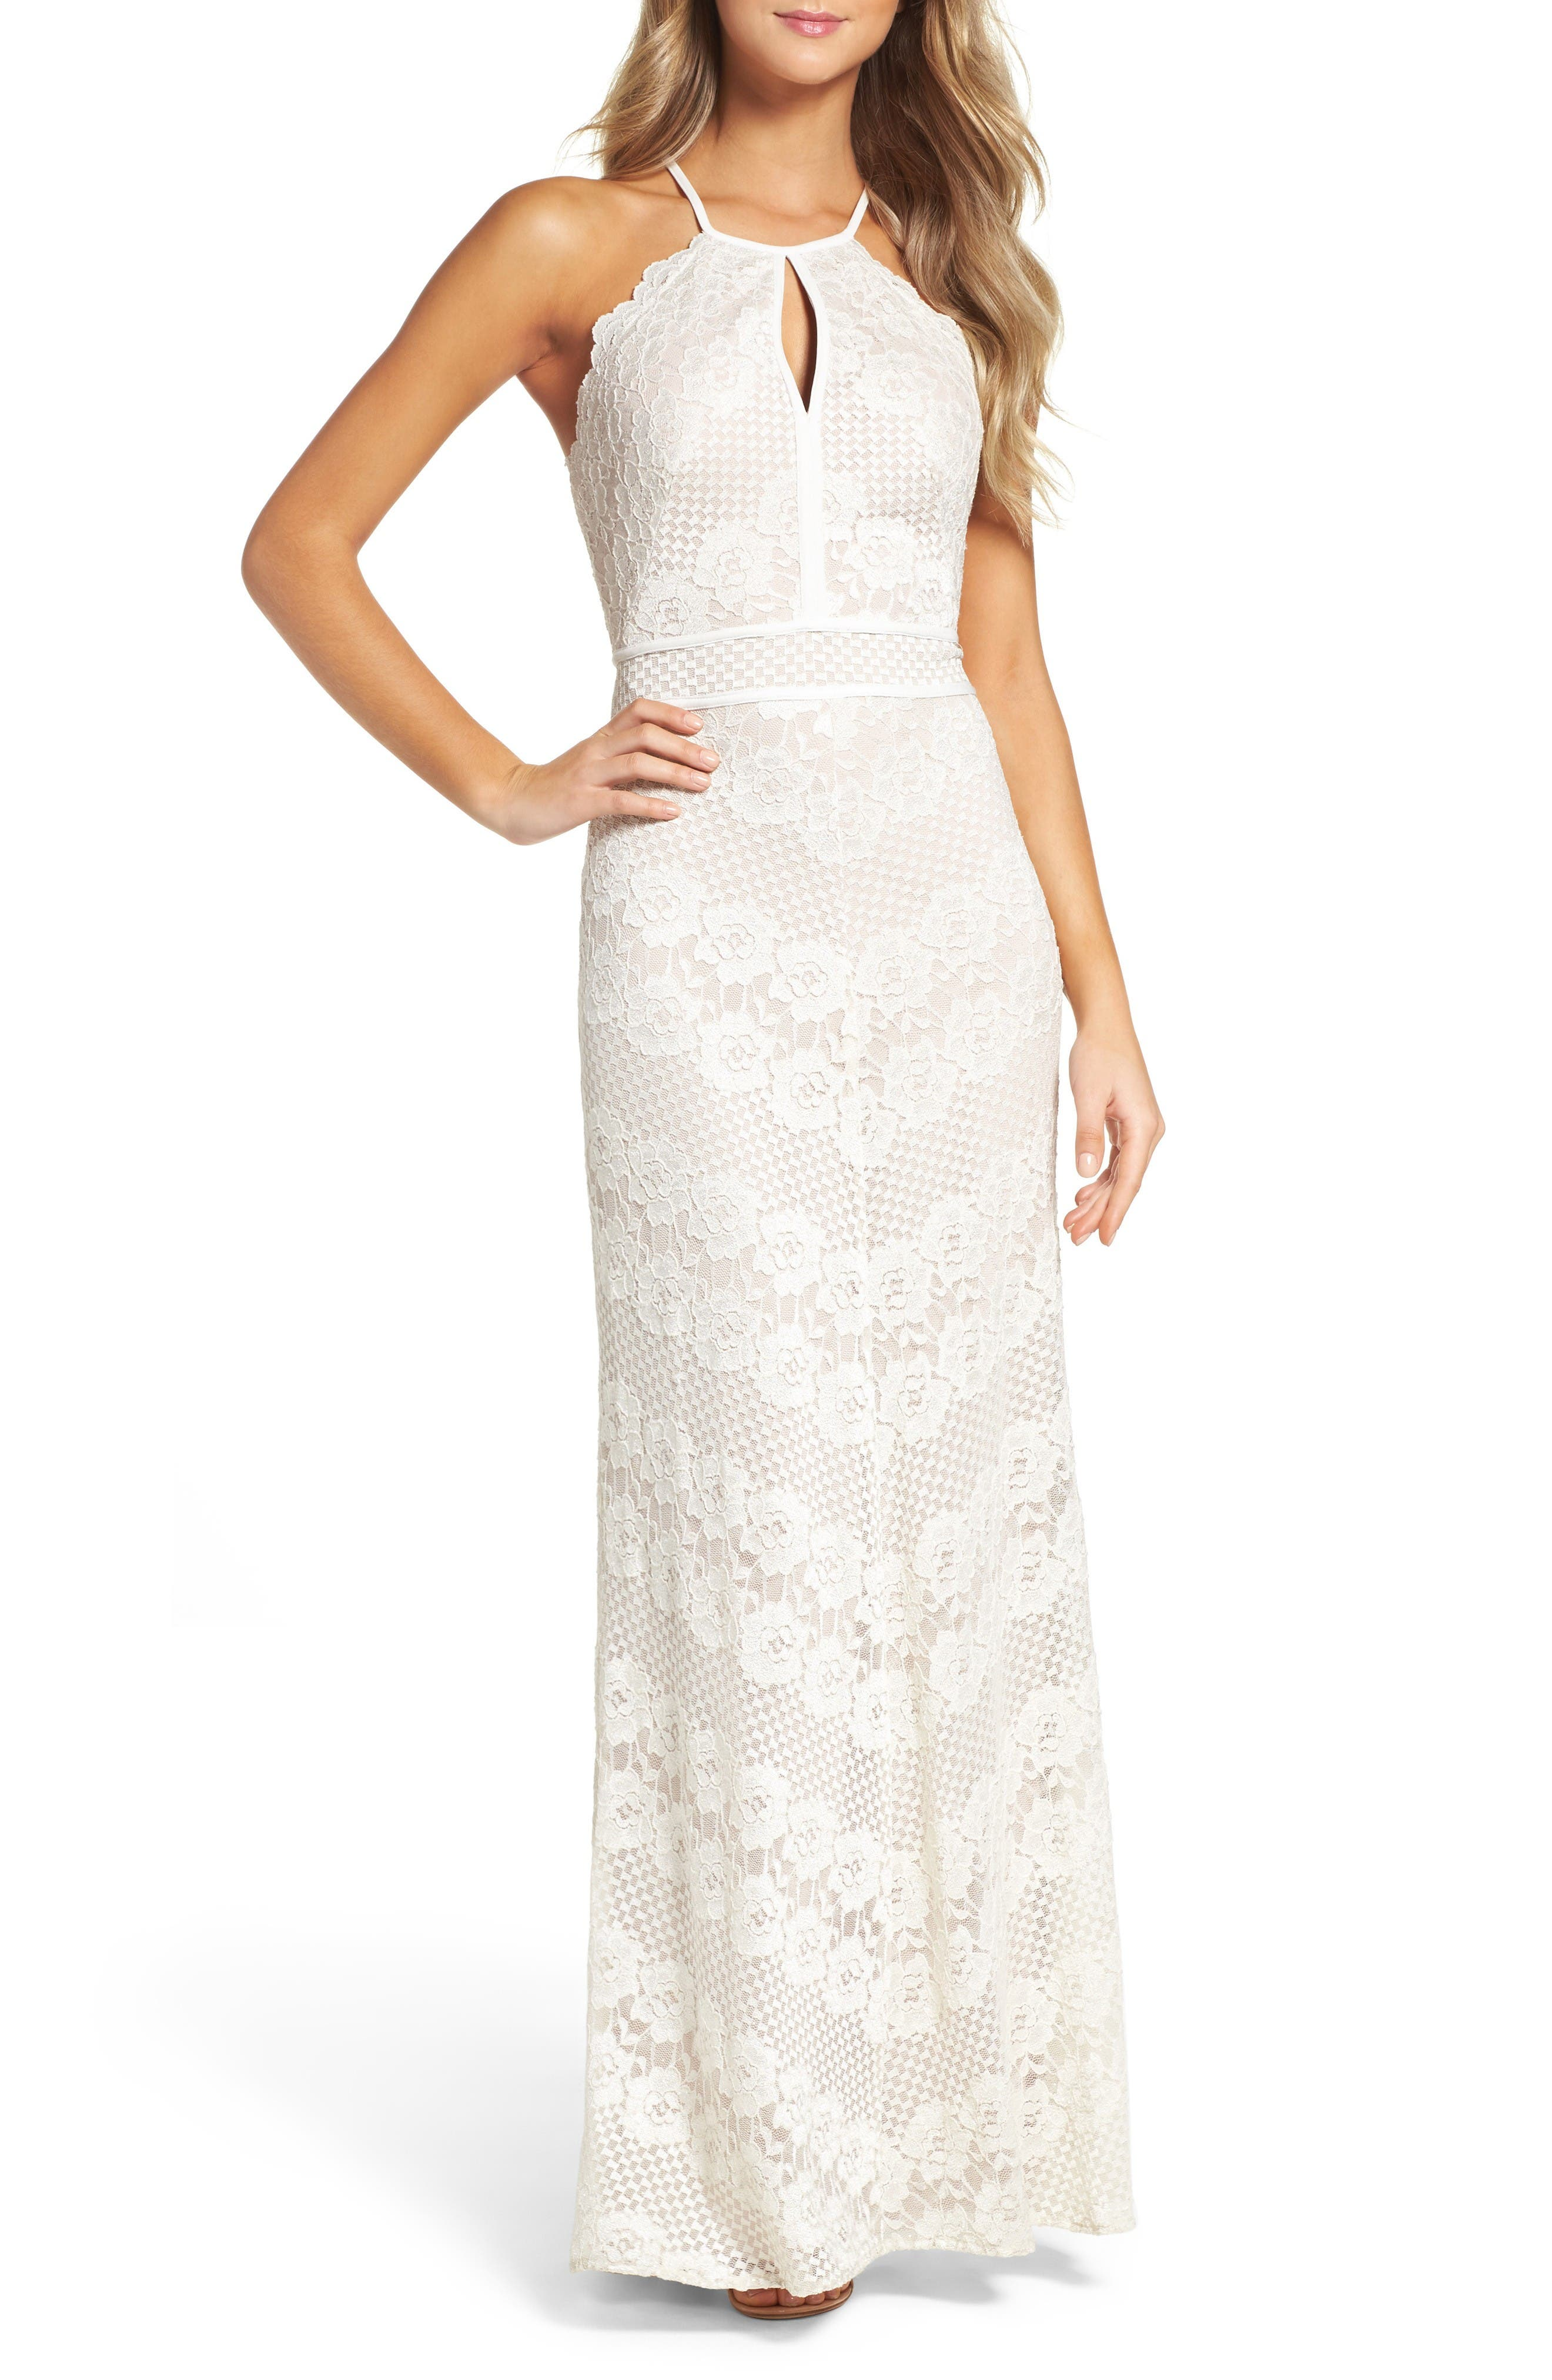 Crisscross Lace Gown,                             Main thumbnail 1, color,                             Ivory/ Nude